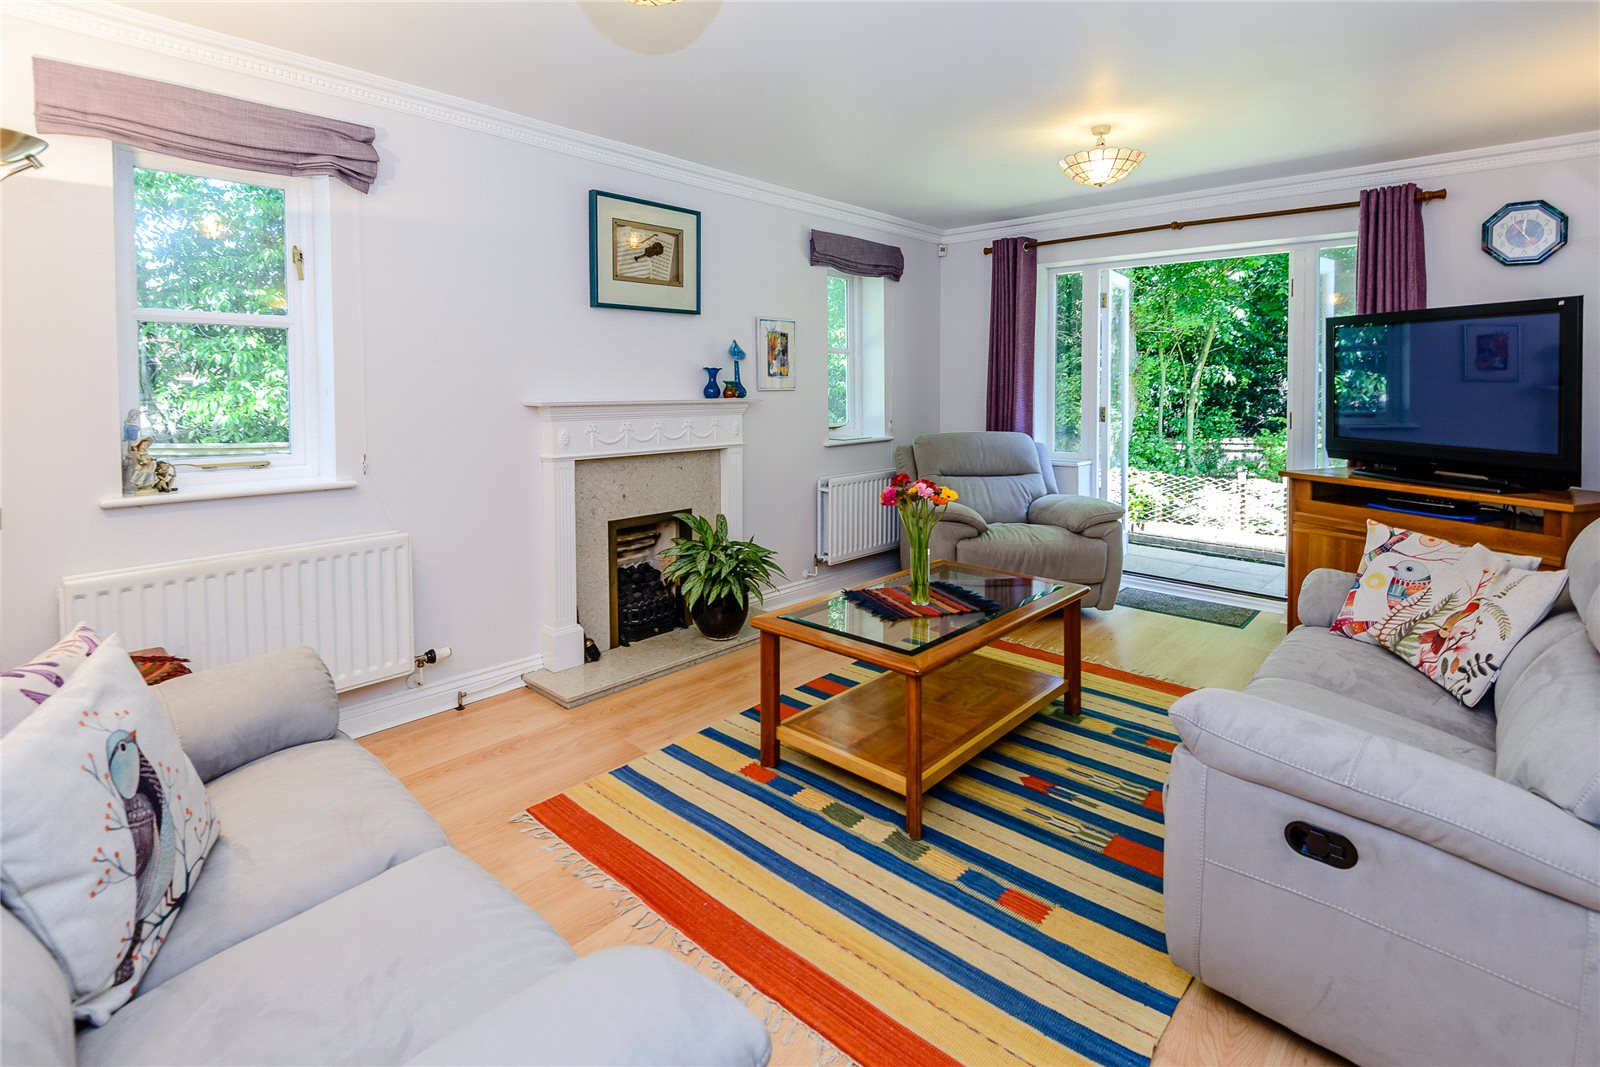 Additional photo for property listing at Charters Way, Ascot, Berkshire, SL5 Ascot, England